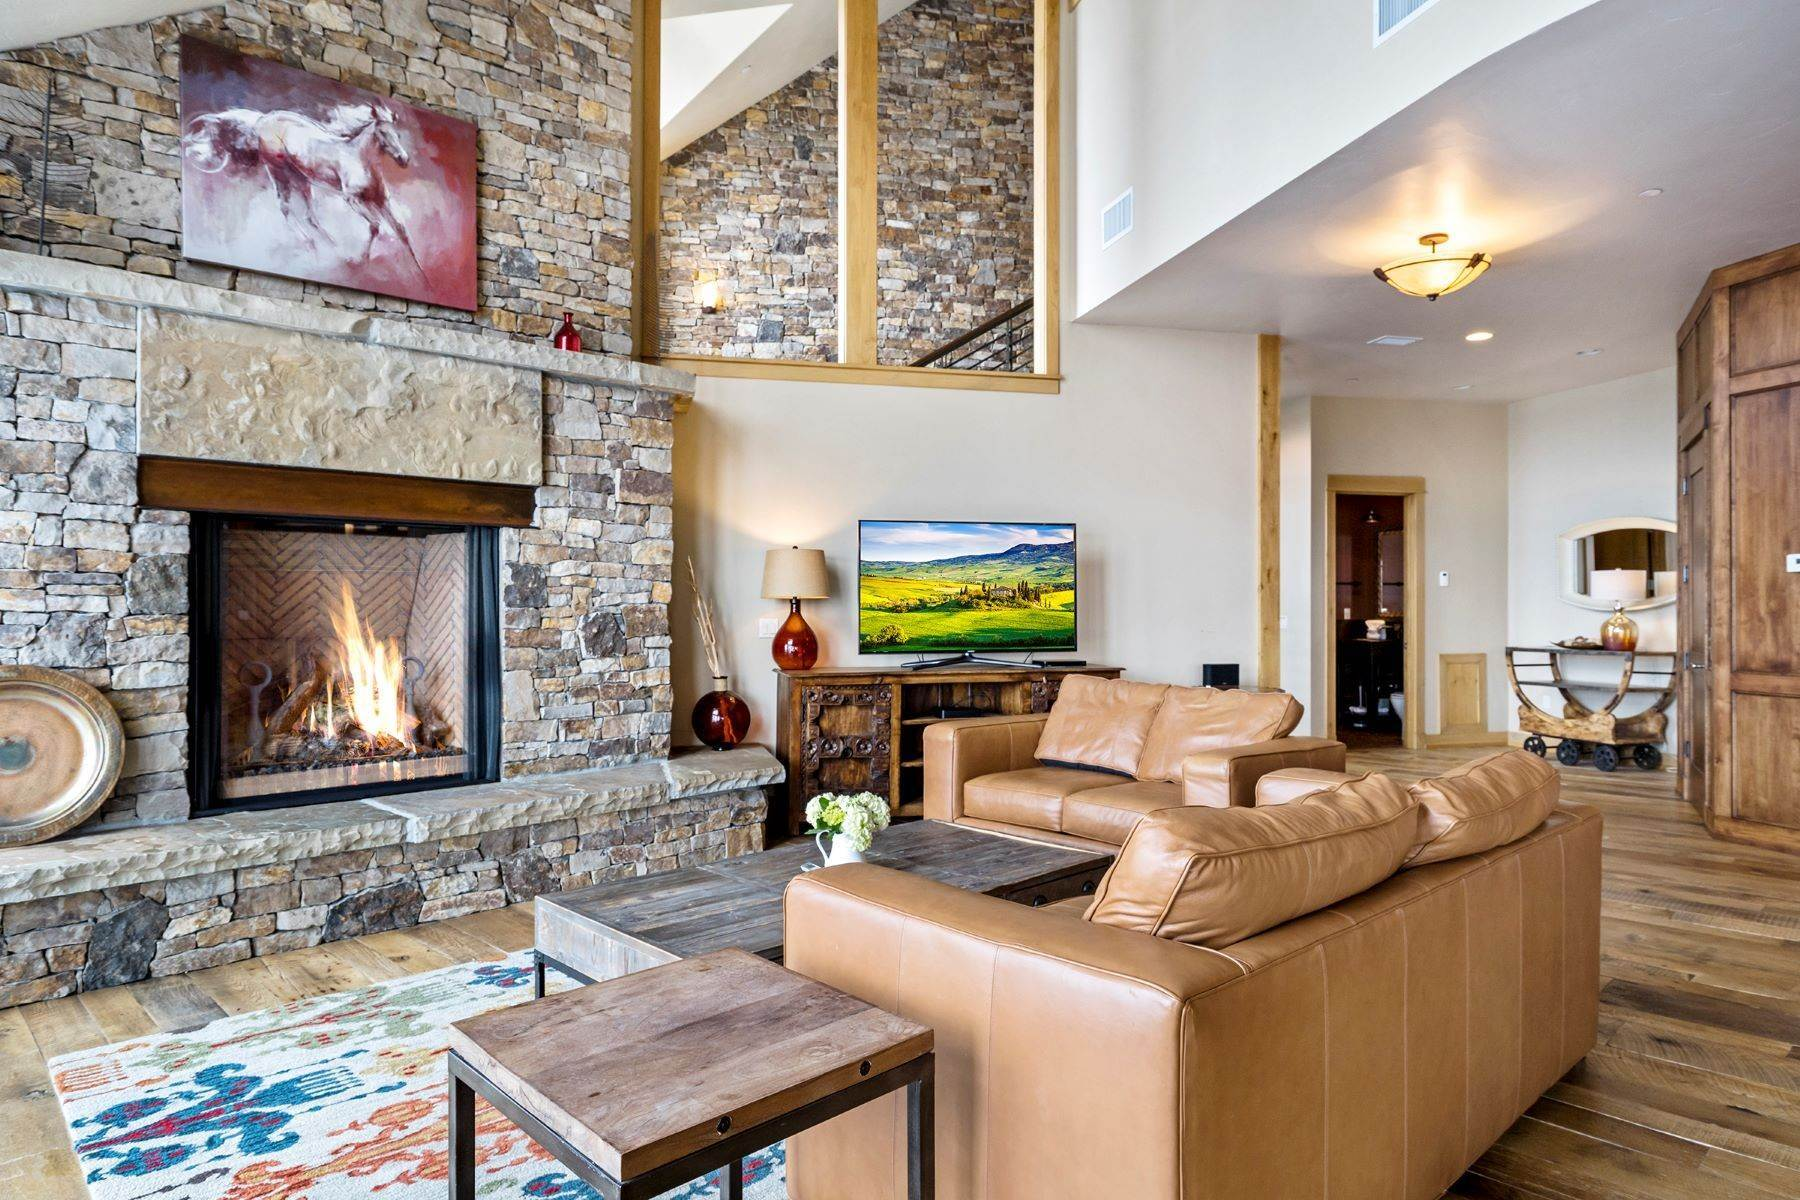 4. townhouses por un Venta en Luxury Mountain Retreat Falconhead South 2607 Ski Trail Lane Steamboat Springs, Colorado 80487 Estados Unidos